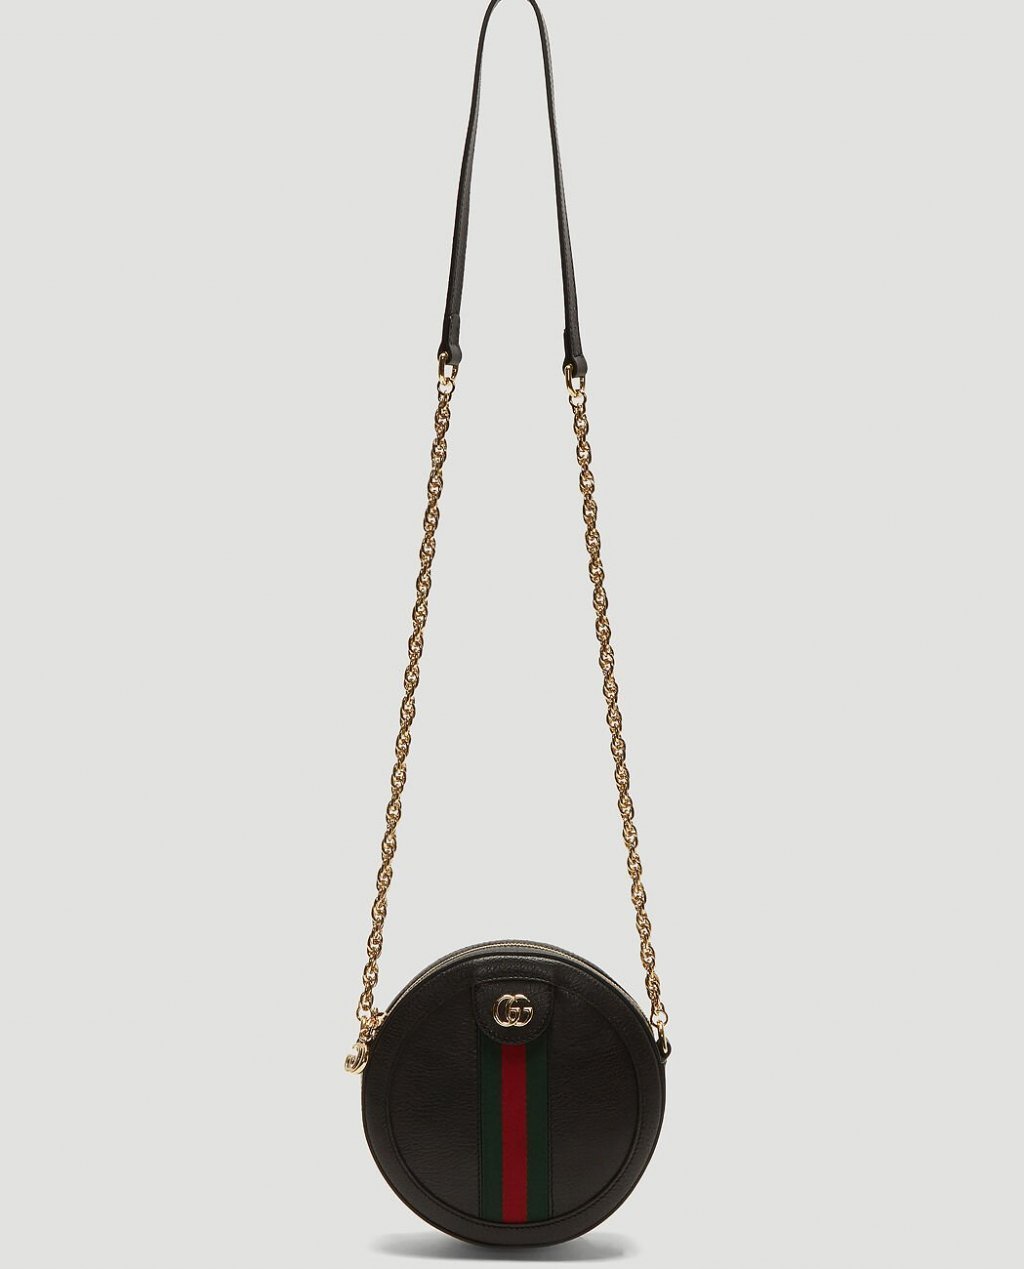 Gucci Ophidia Round Crossbody Bag in Black